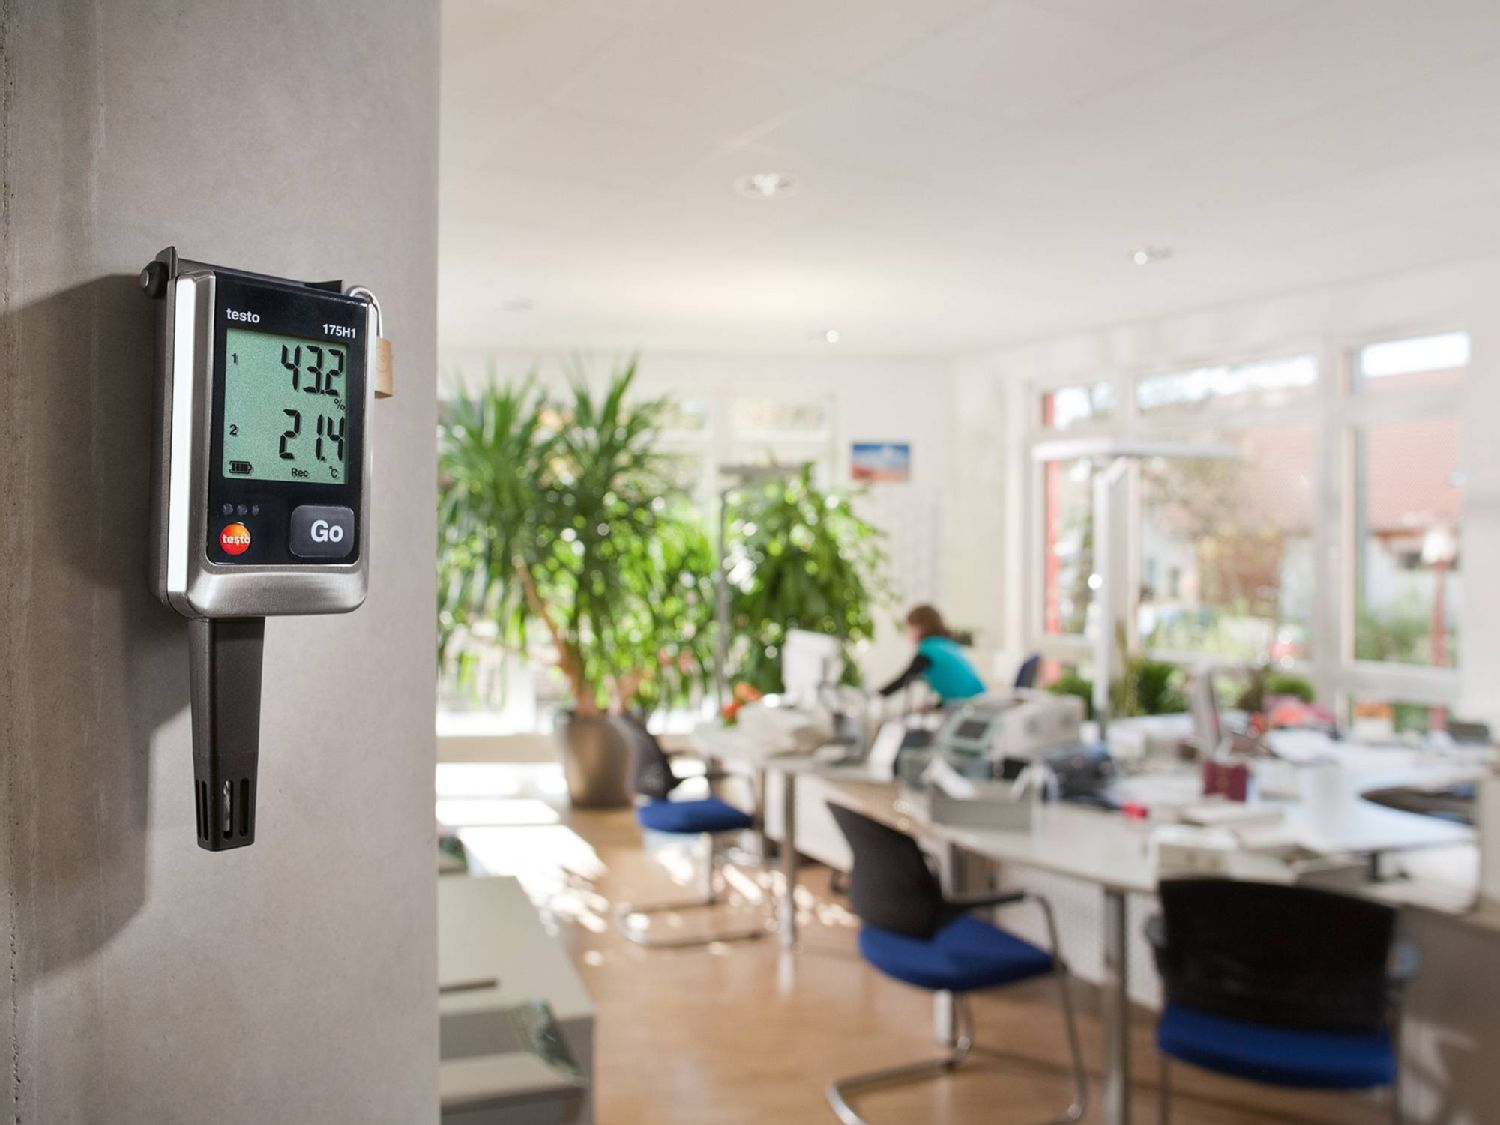 Humidity measurement with data logger in the office